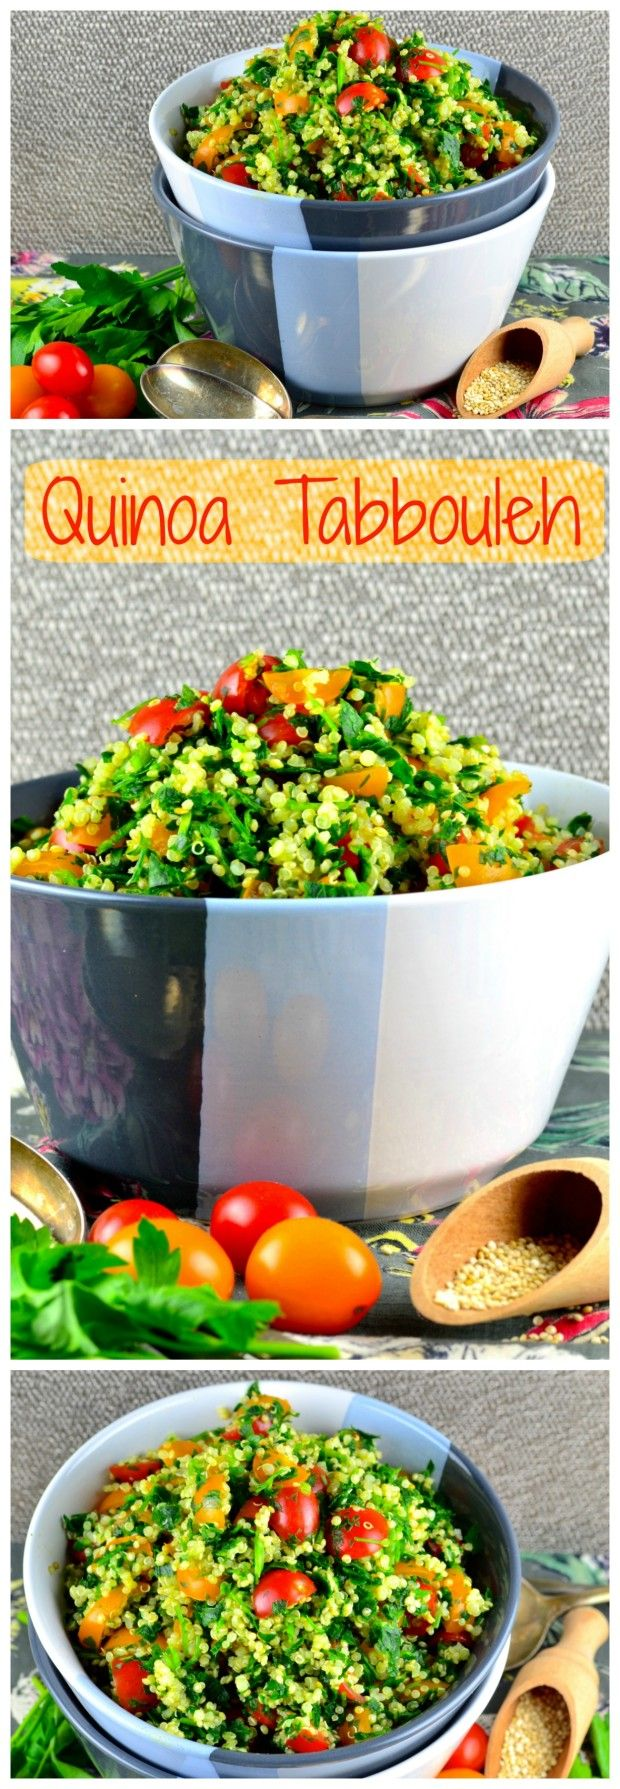 Quinoa Tabbouleh - New and exciting not only for passover recipe.  Using quinoa instead for Bulgur wheat in the recipe, makes this tabbouleh salad gluten free, healthy, vegetarian, vegan and higher in protein.